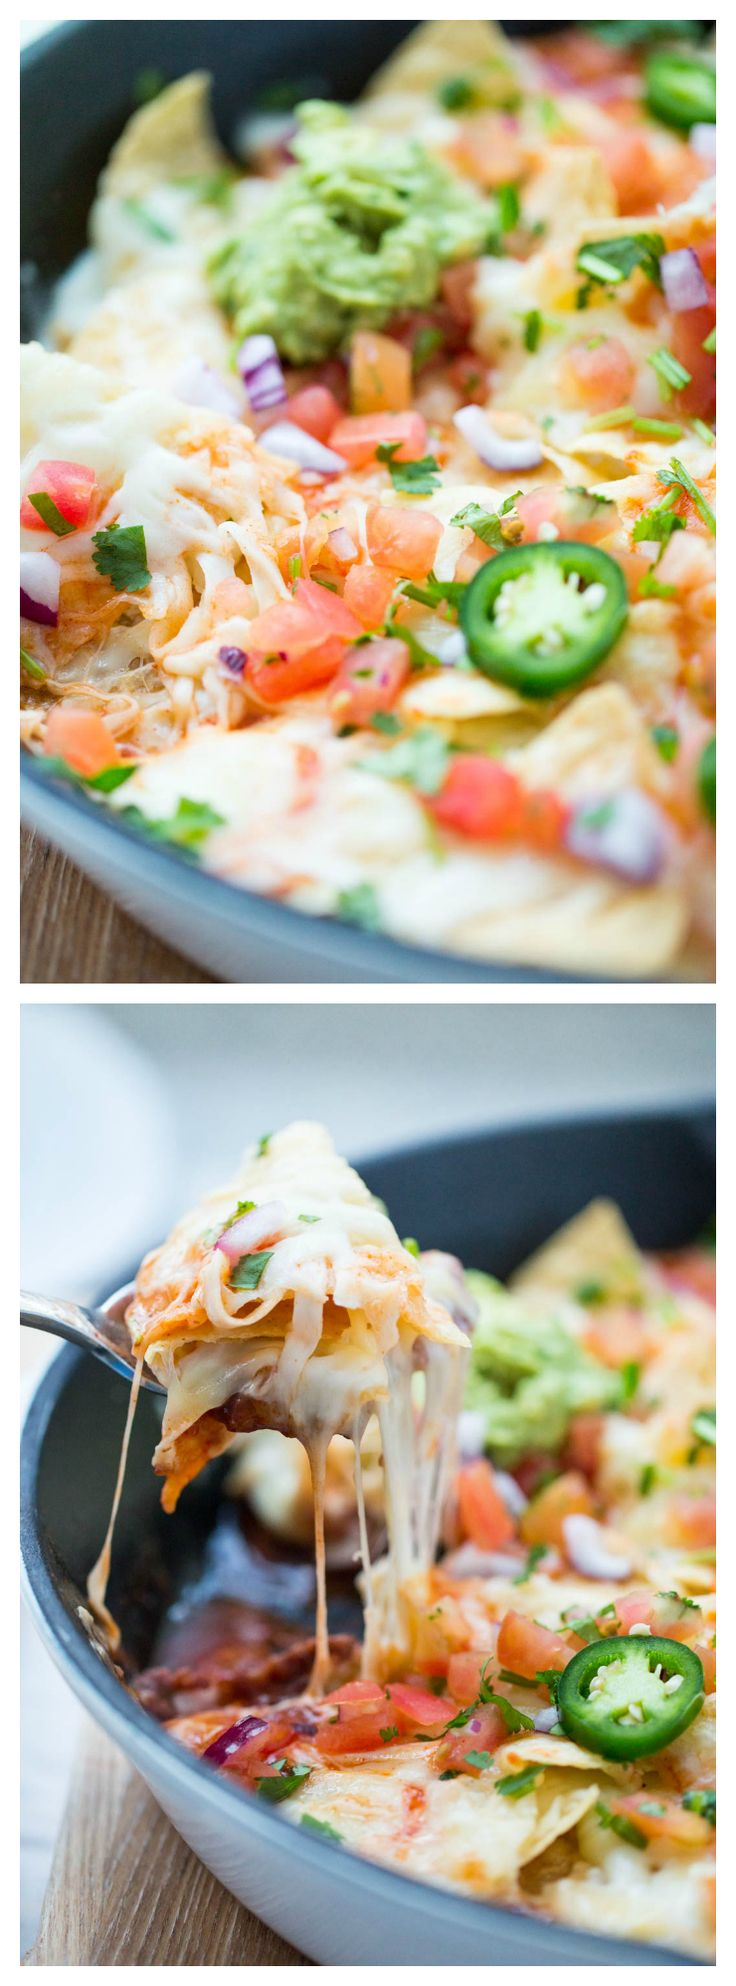 The Ultimate Skillet Nachos - love how EASY and cheesy these nachos are! They are the perfect appetizer recipe for game day!